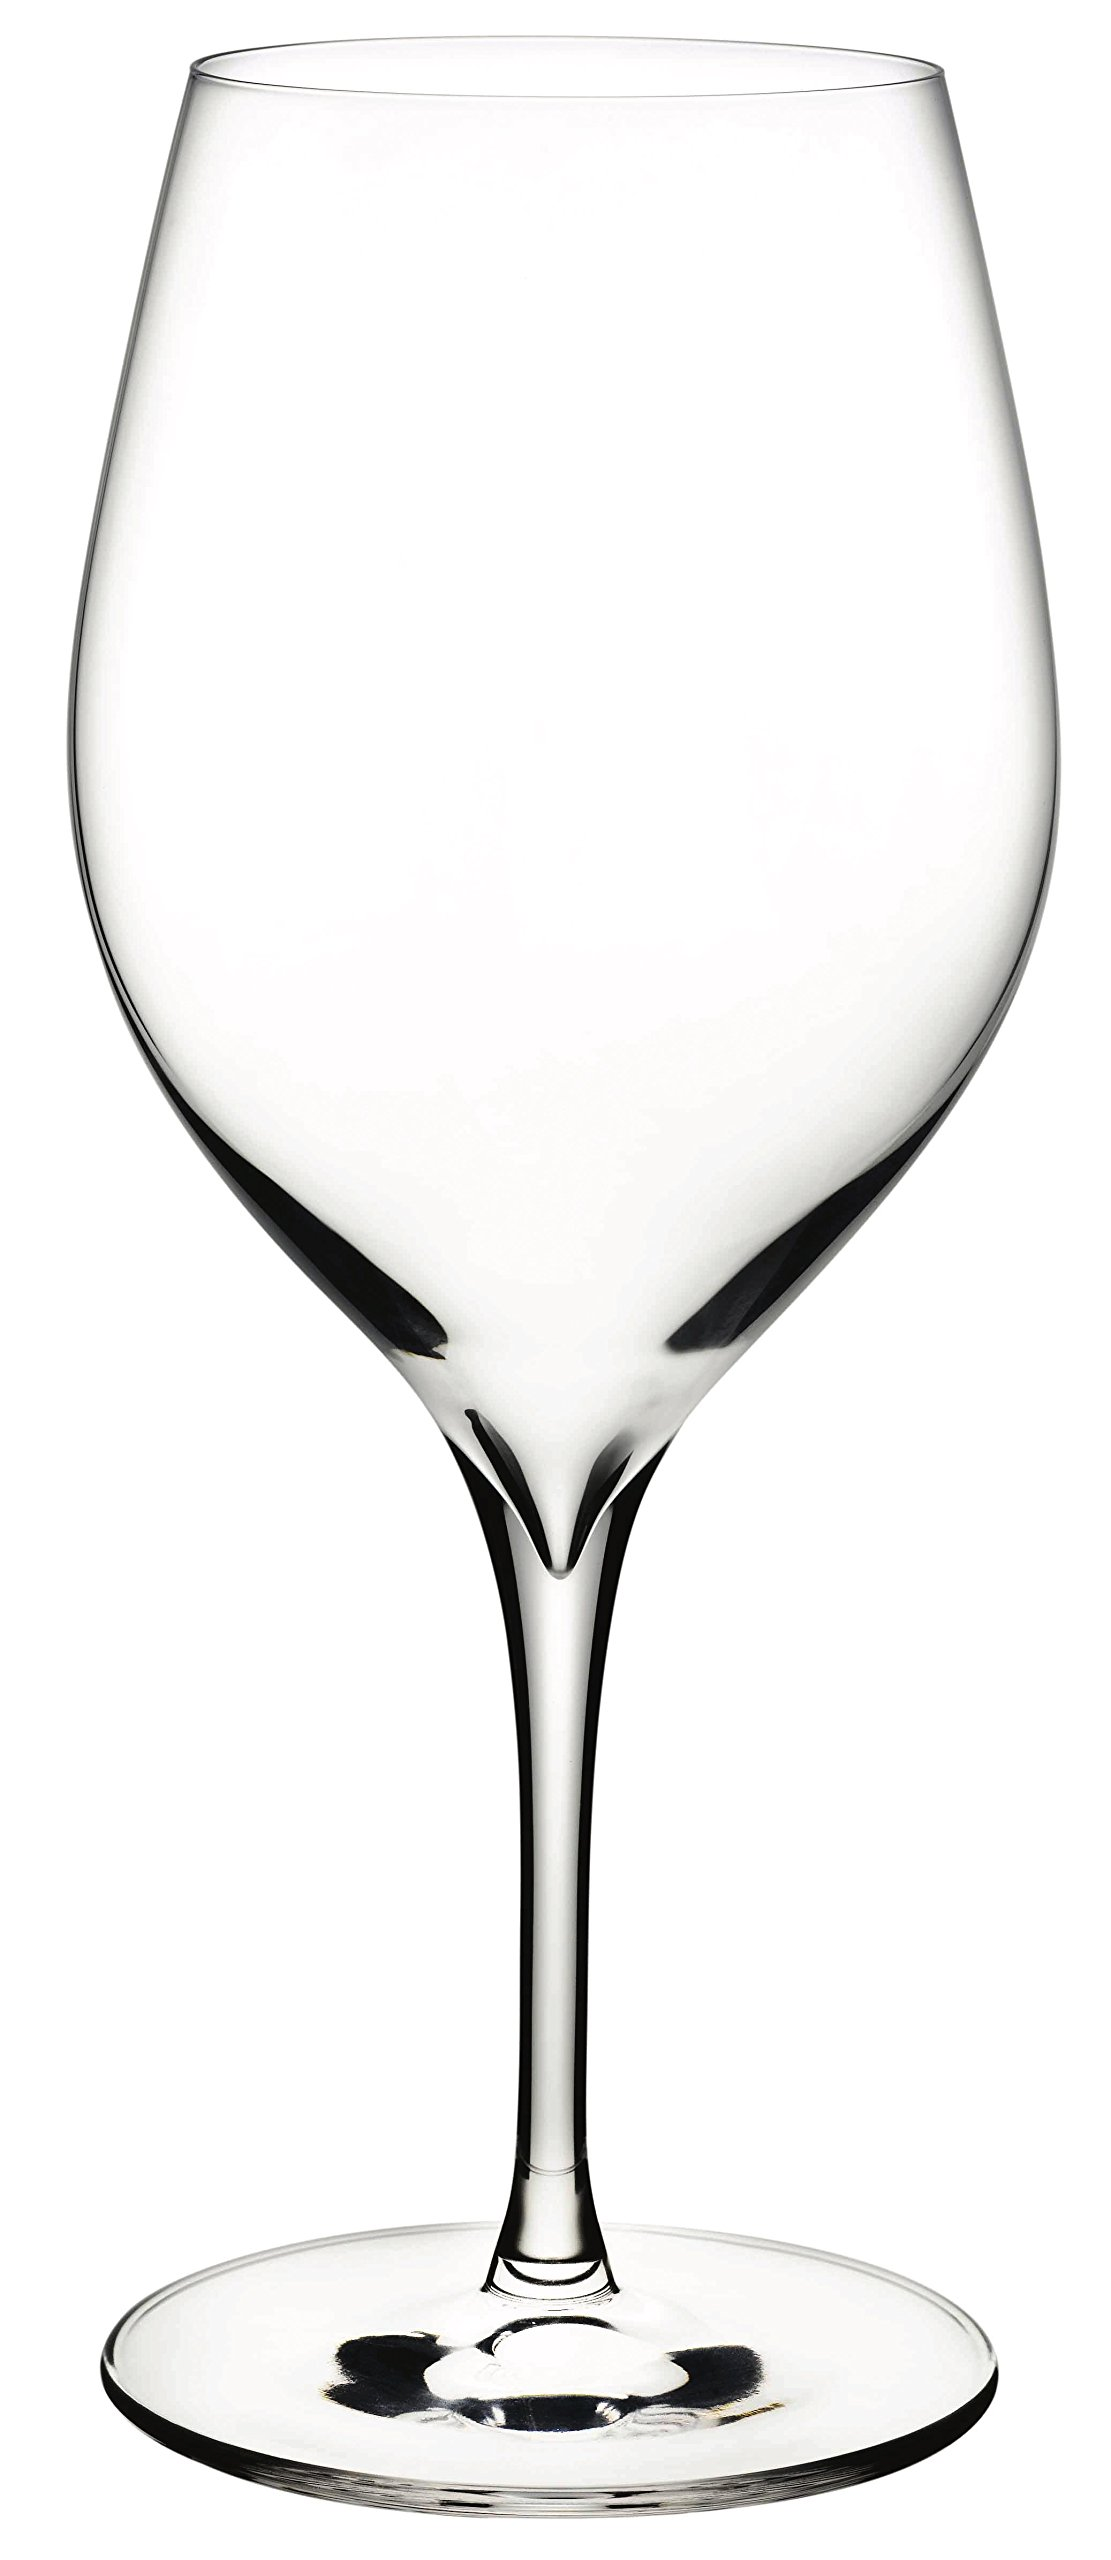 Hospitality Glass Brands 66095-012 Terroir Powerful Red Wine, 22.25 oz. (Pack of 12)